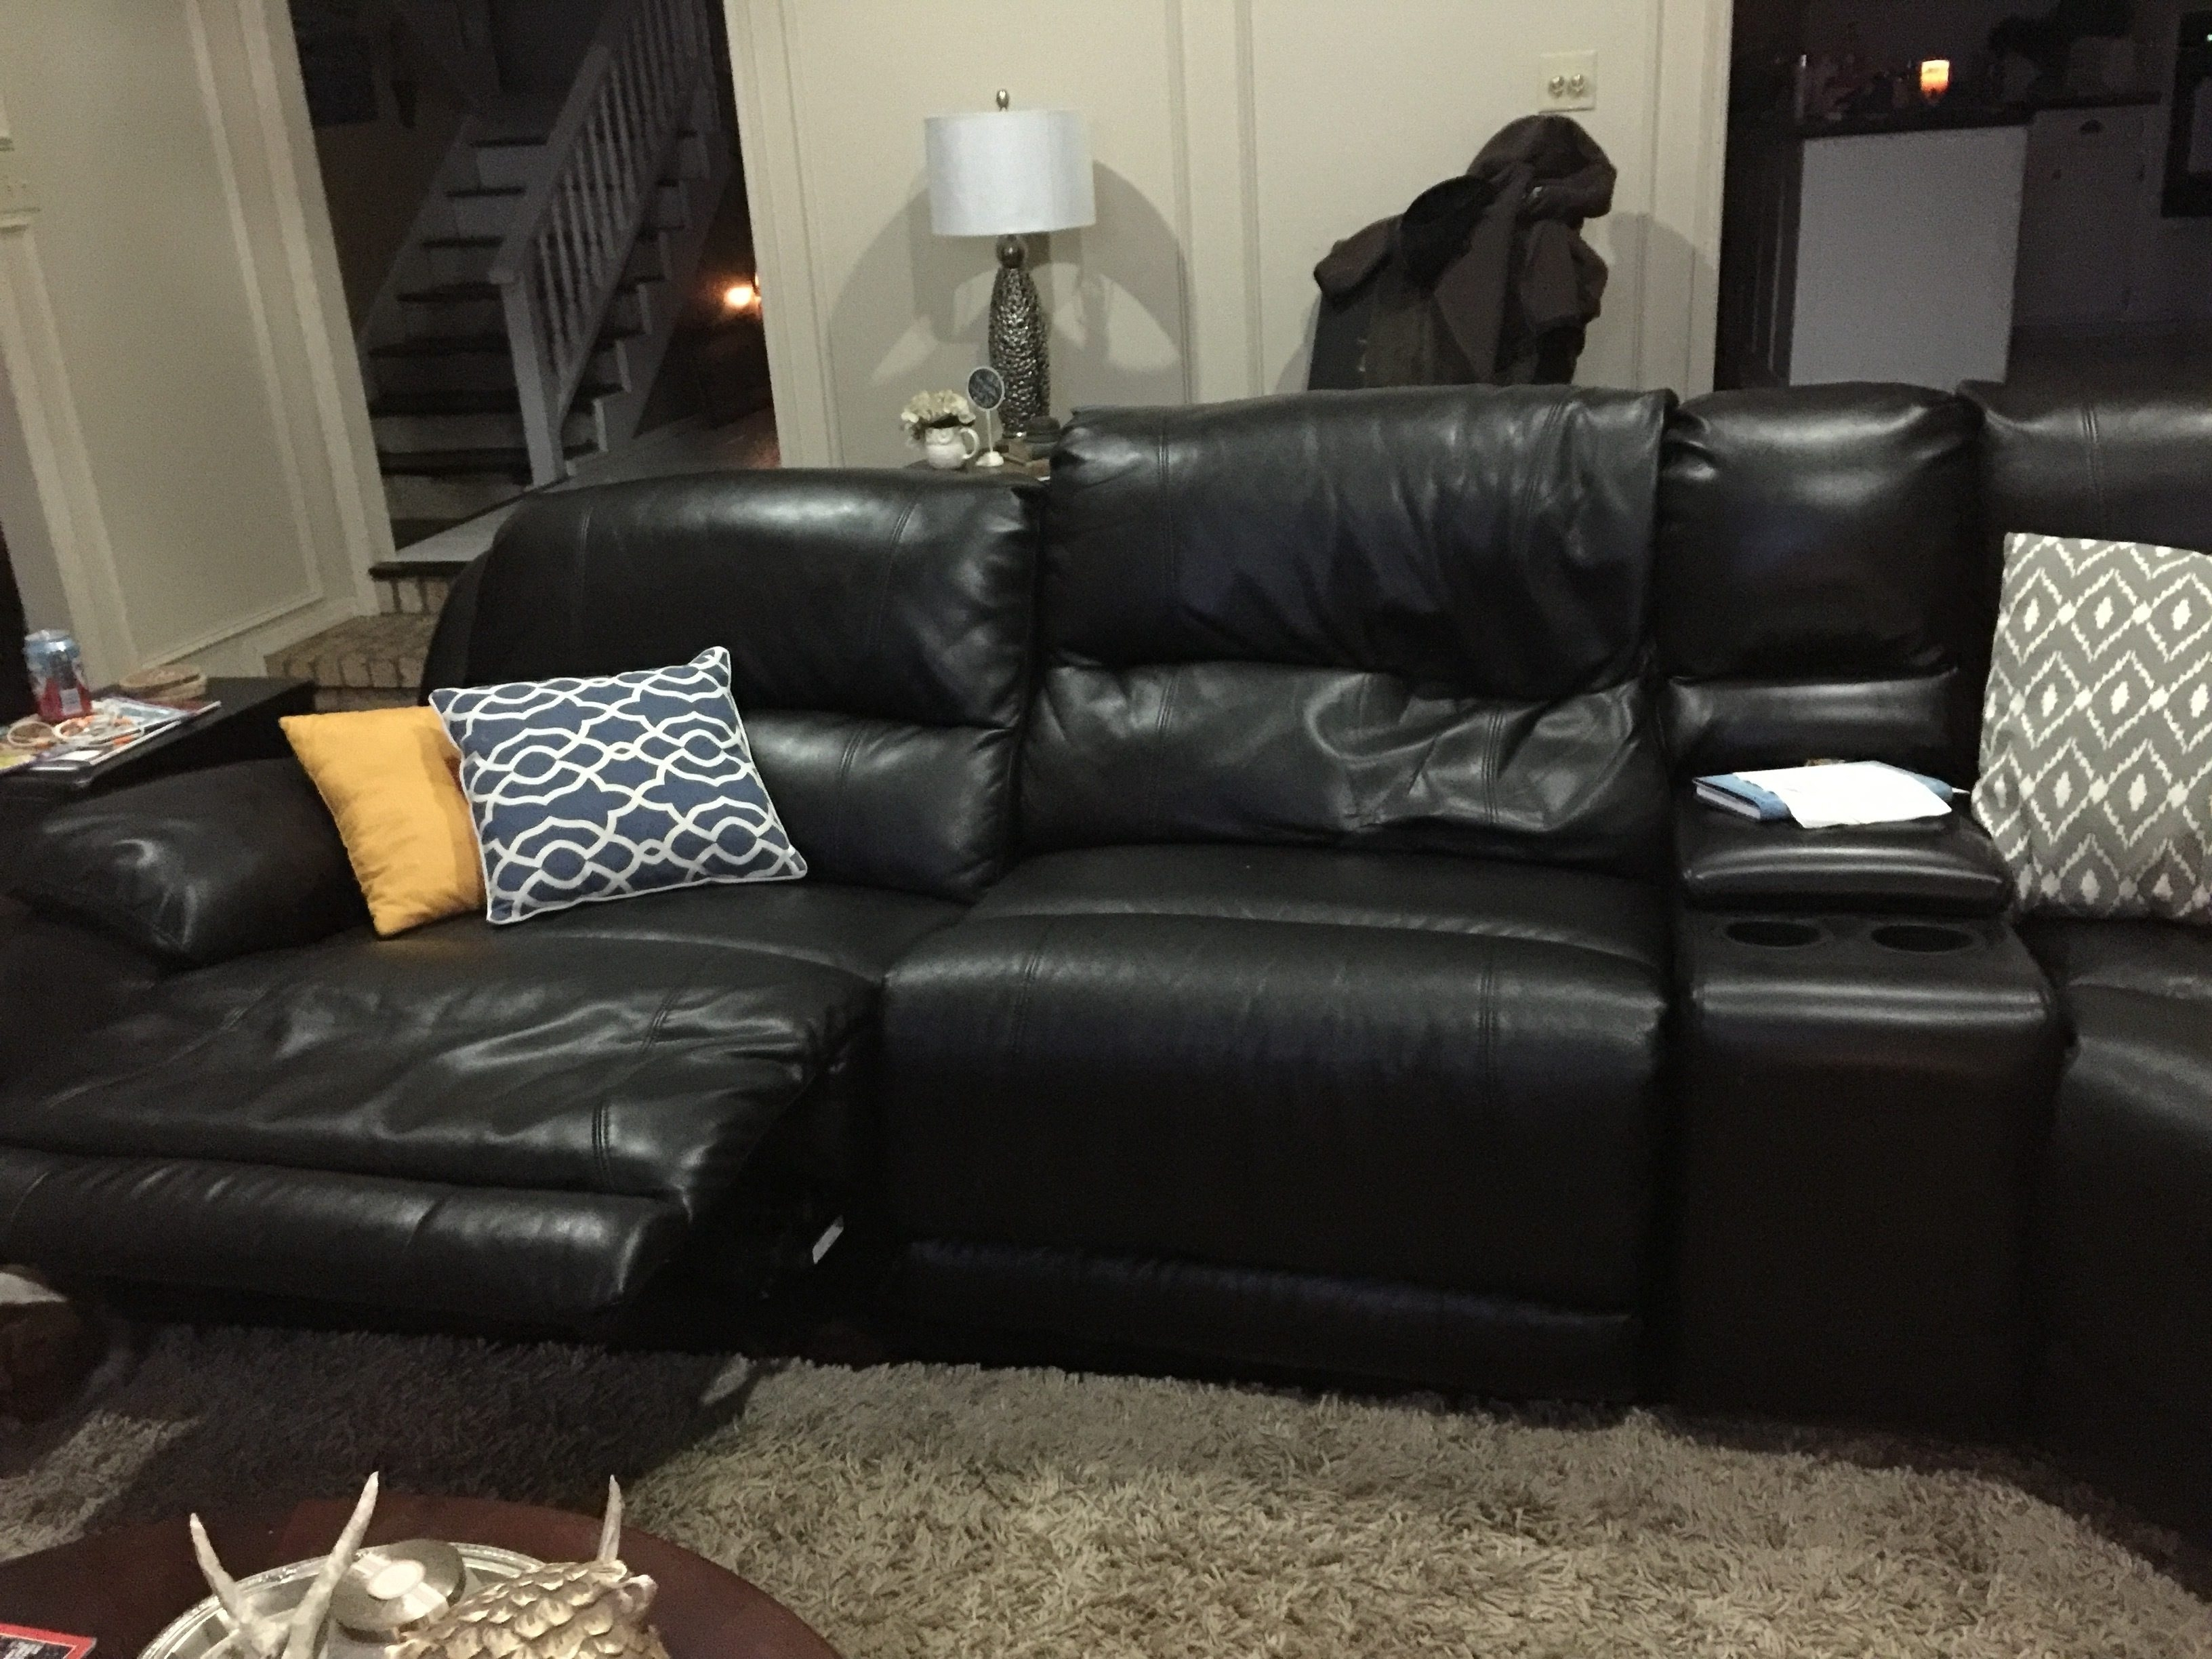 Most Recent Sectional Sofa: Sectional Sofas On Craigslist Church Chairs For Intended For Durham Region Sectional Sofas (View 8 of 20)